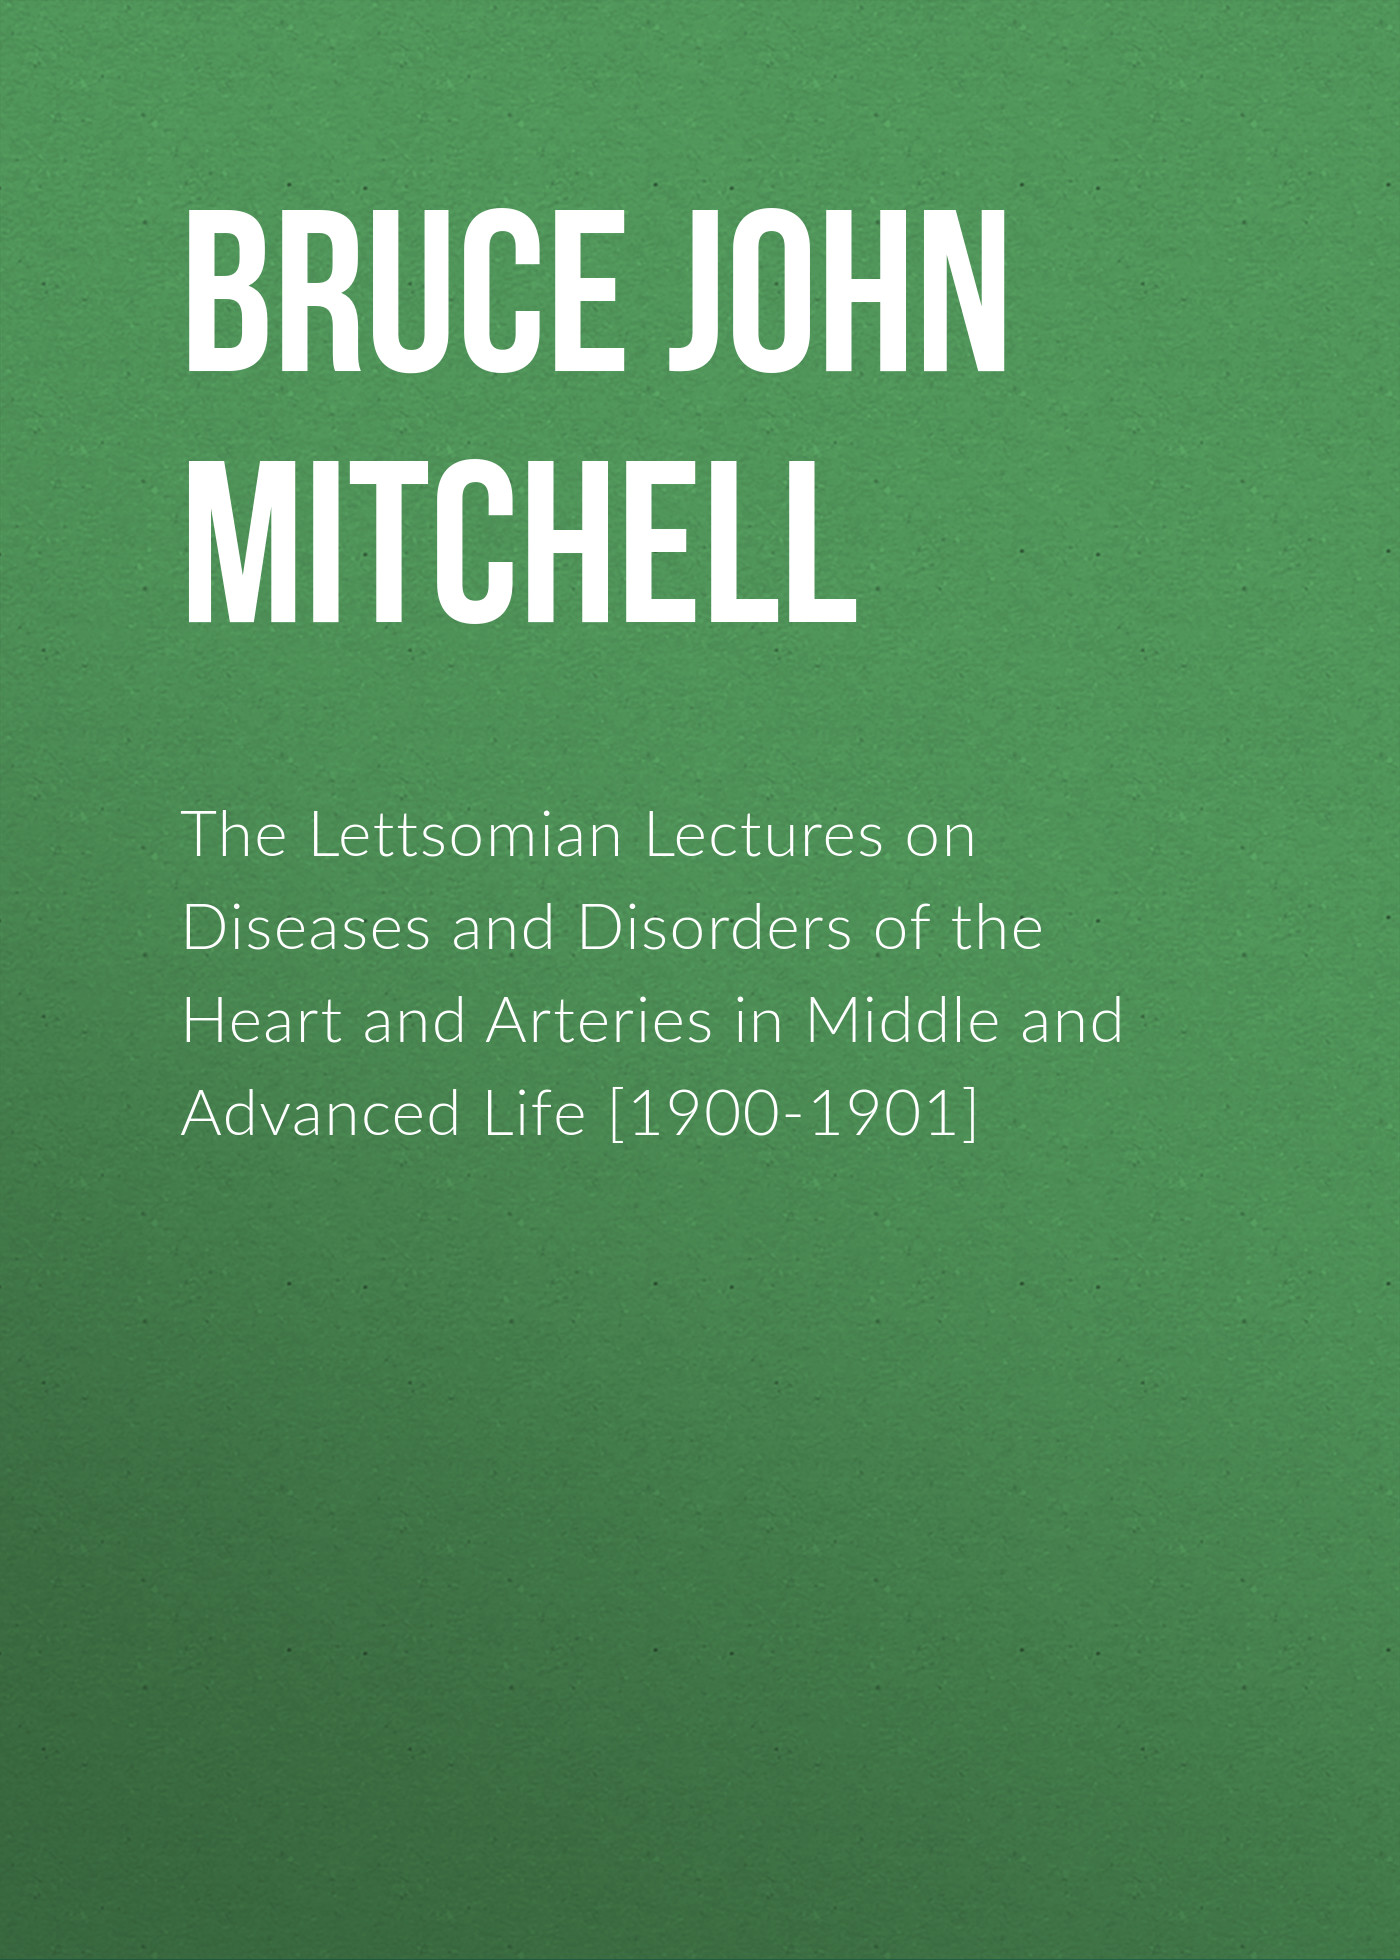 Bruce John Mitchell The Lettsomian Lectures on Diseases and Disorders of the Heart and Arteries in Middle and Advanced Life [1900-1901] rebecca harding davis life in the iron mills or the korl woman